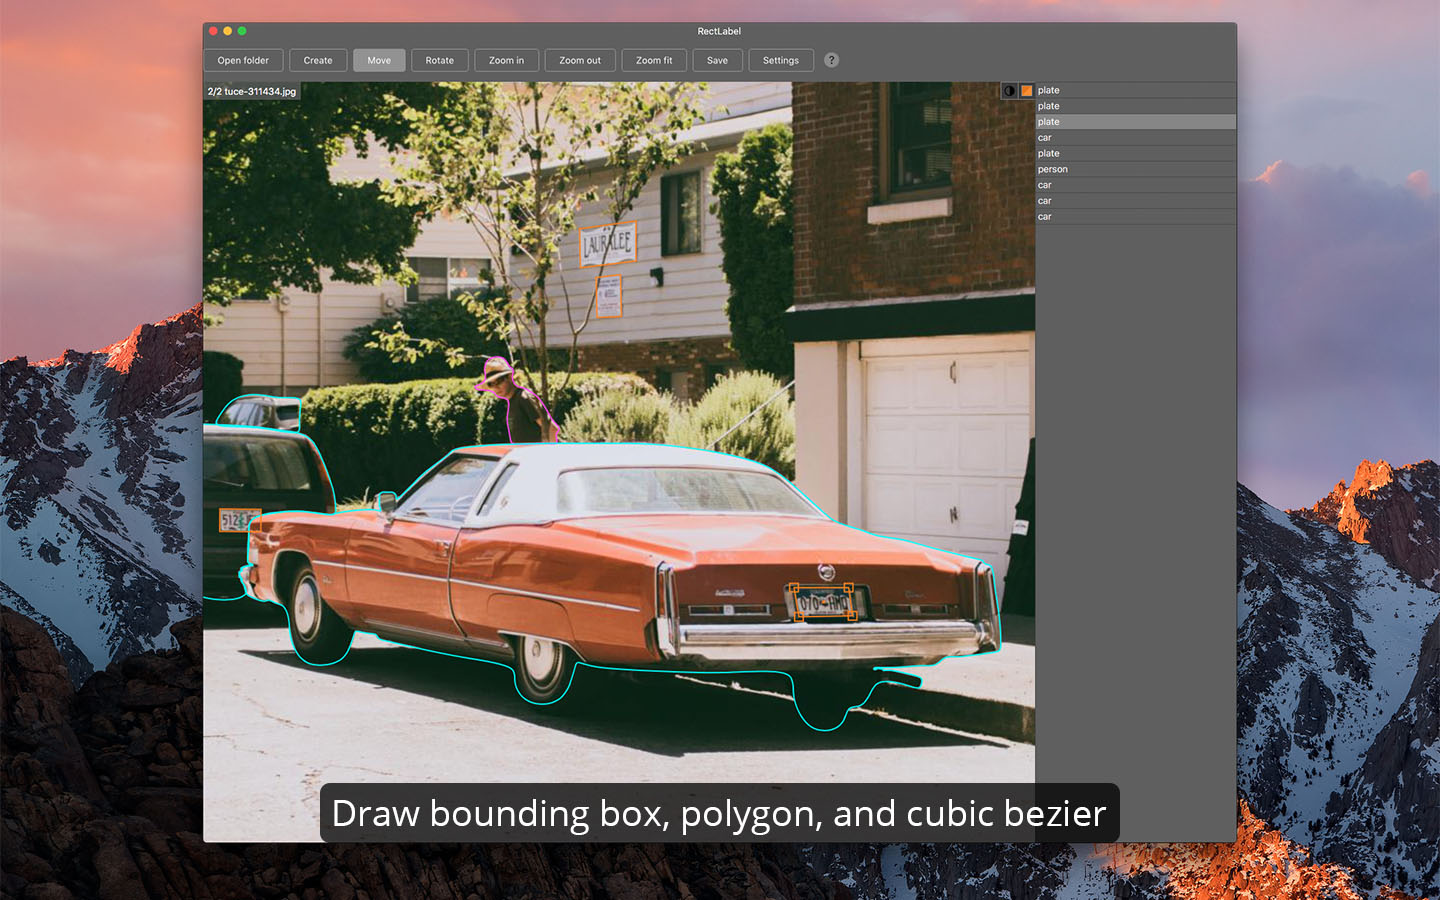 Drawing bounding box, polygon, and cubic bezier